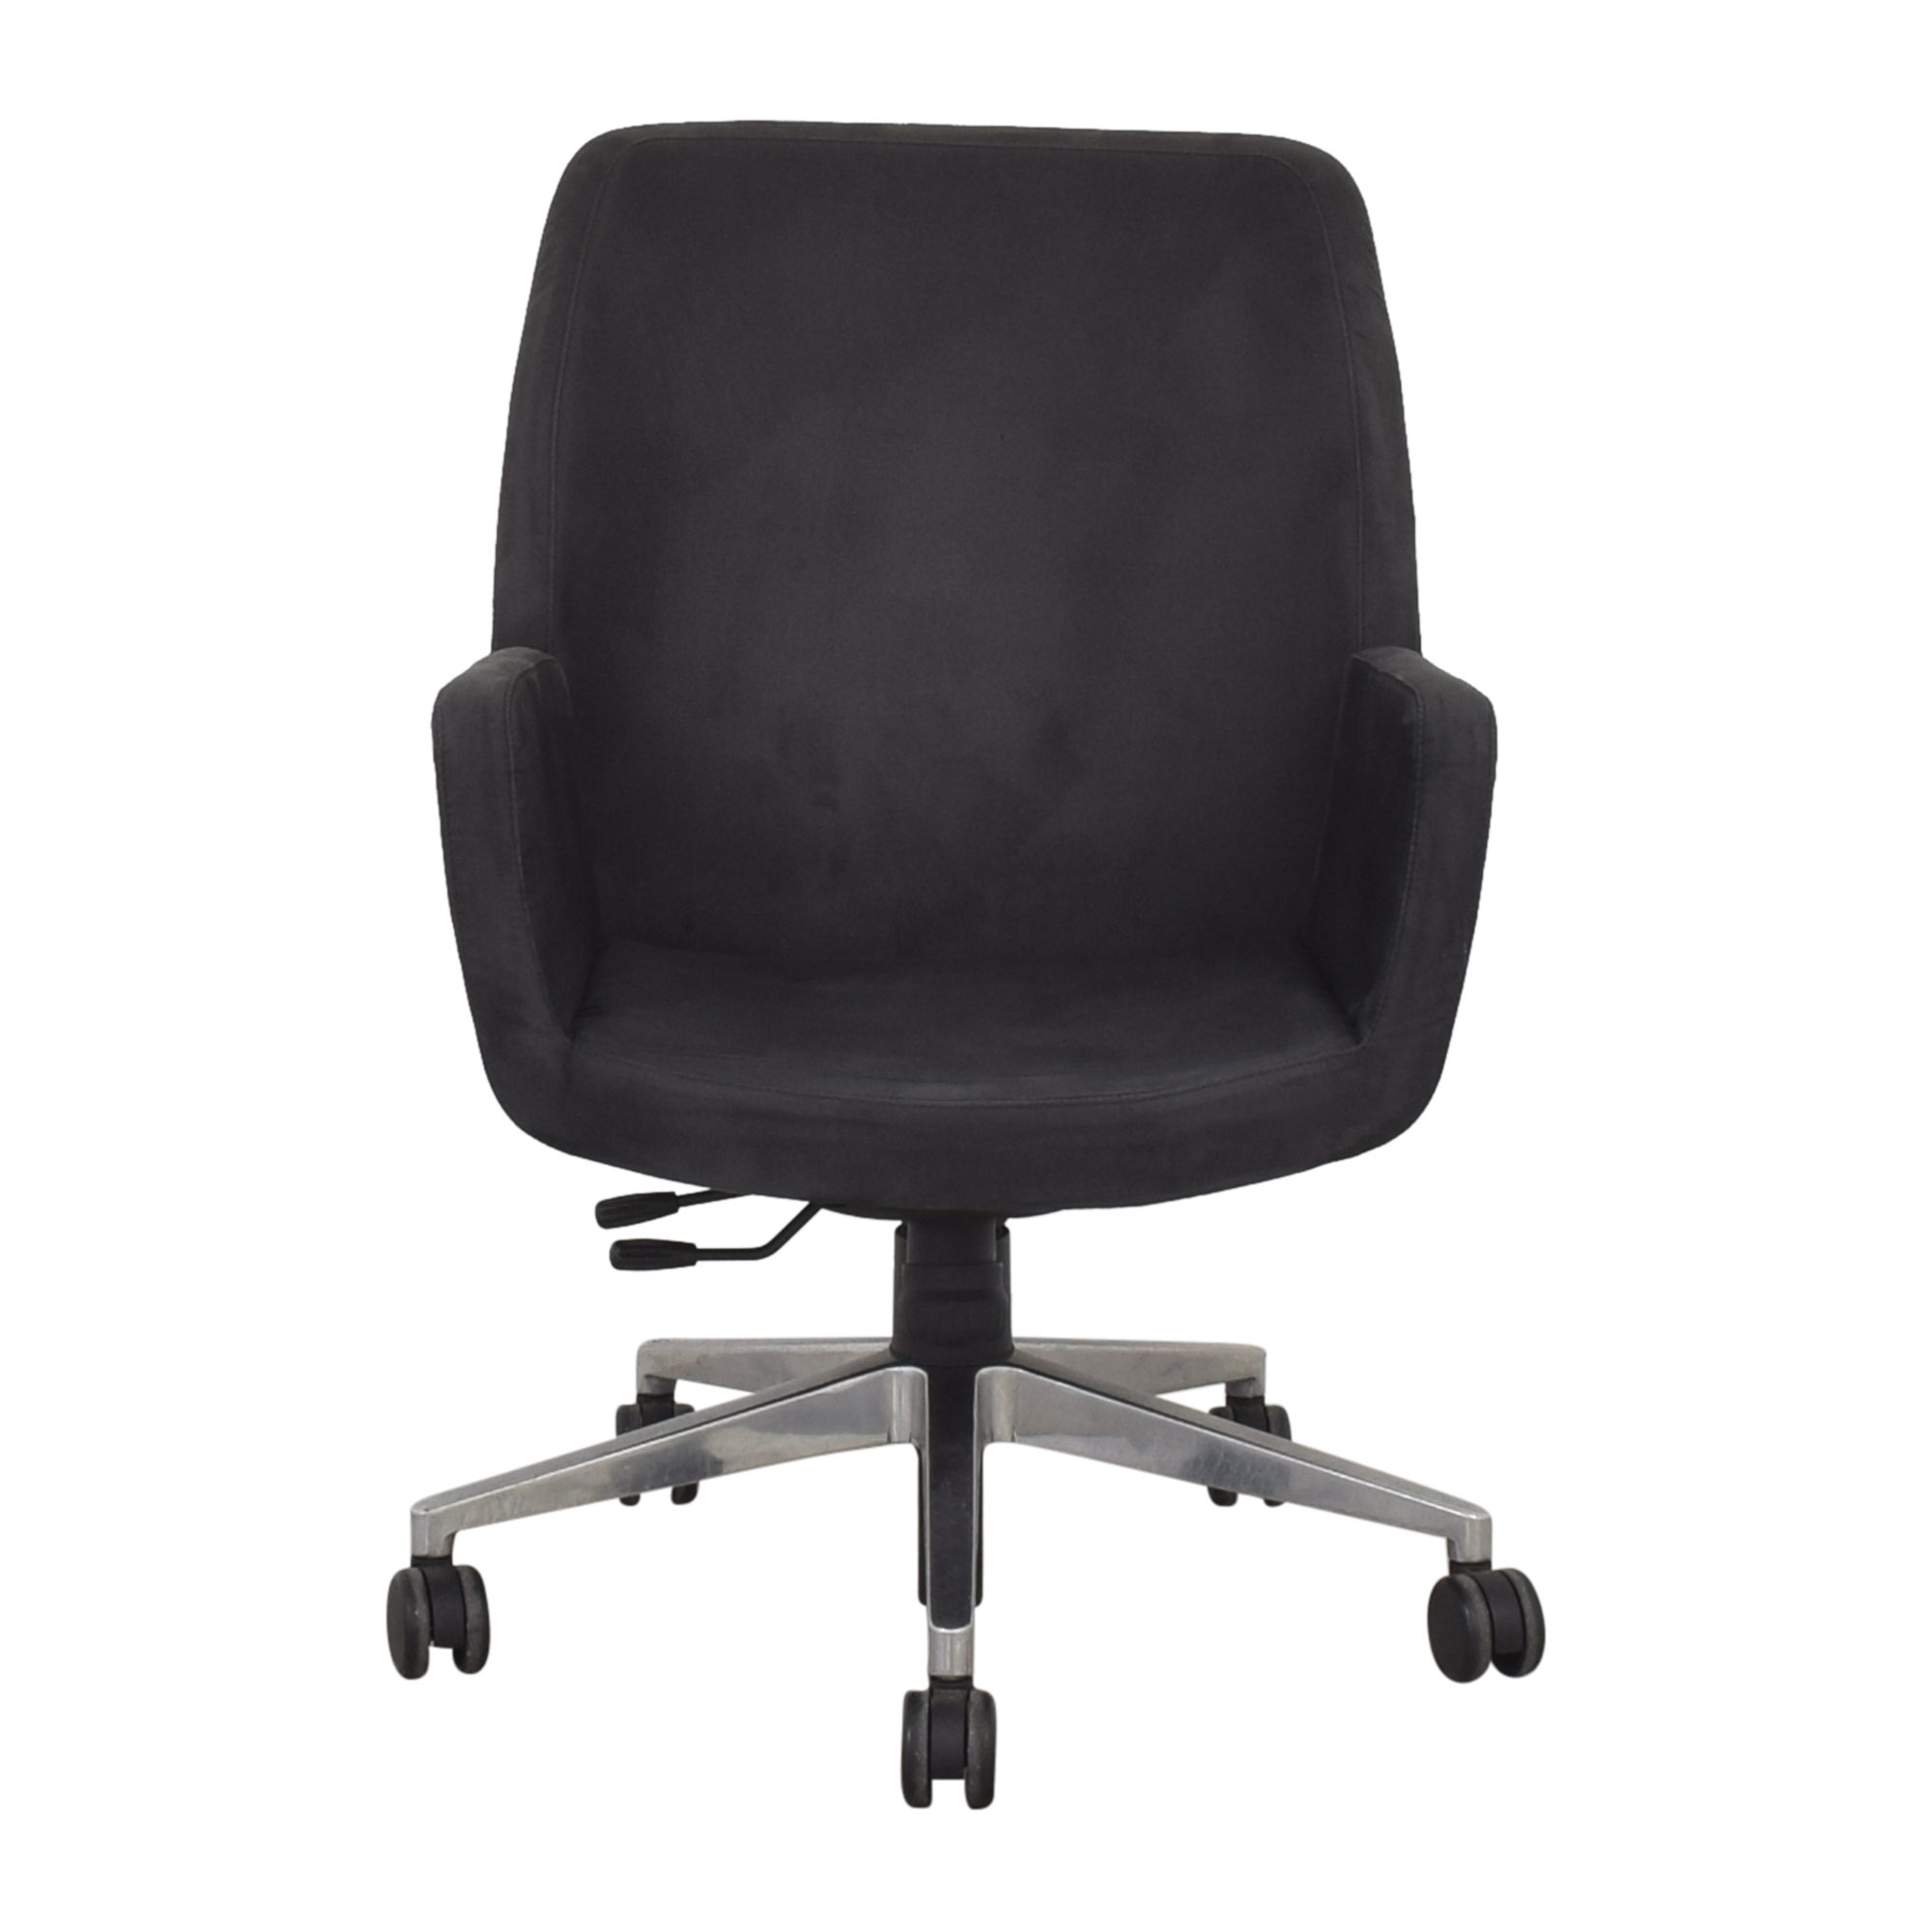 Steelcase Steelcase Coalesse Bindu Guest Chair ct